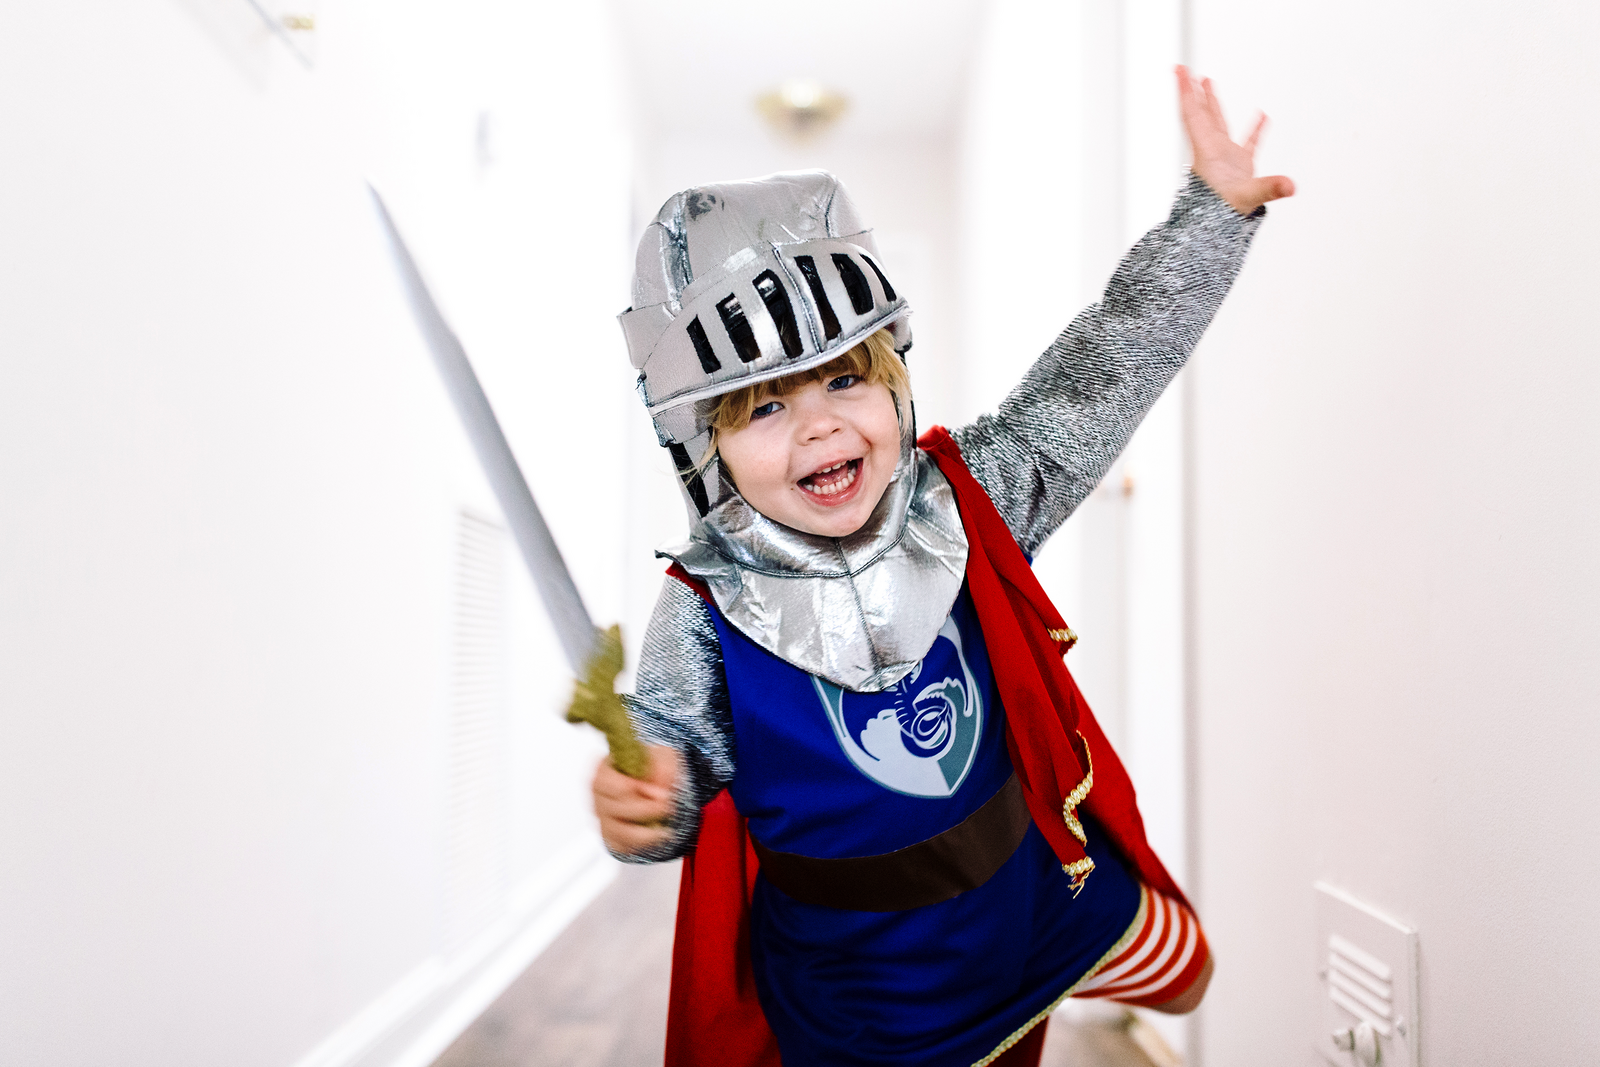 family photographer, columbus, ga, atlanta, documentary, photojournalism, little boy pretending, knight_9744